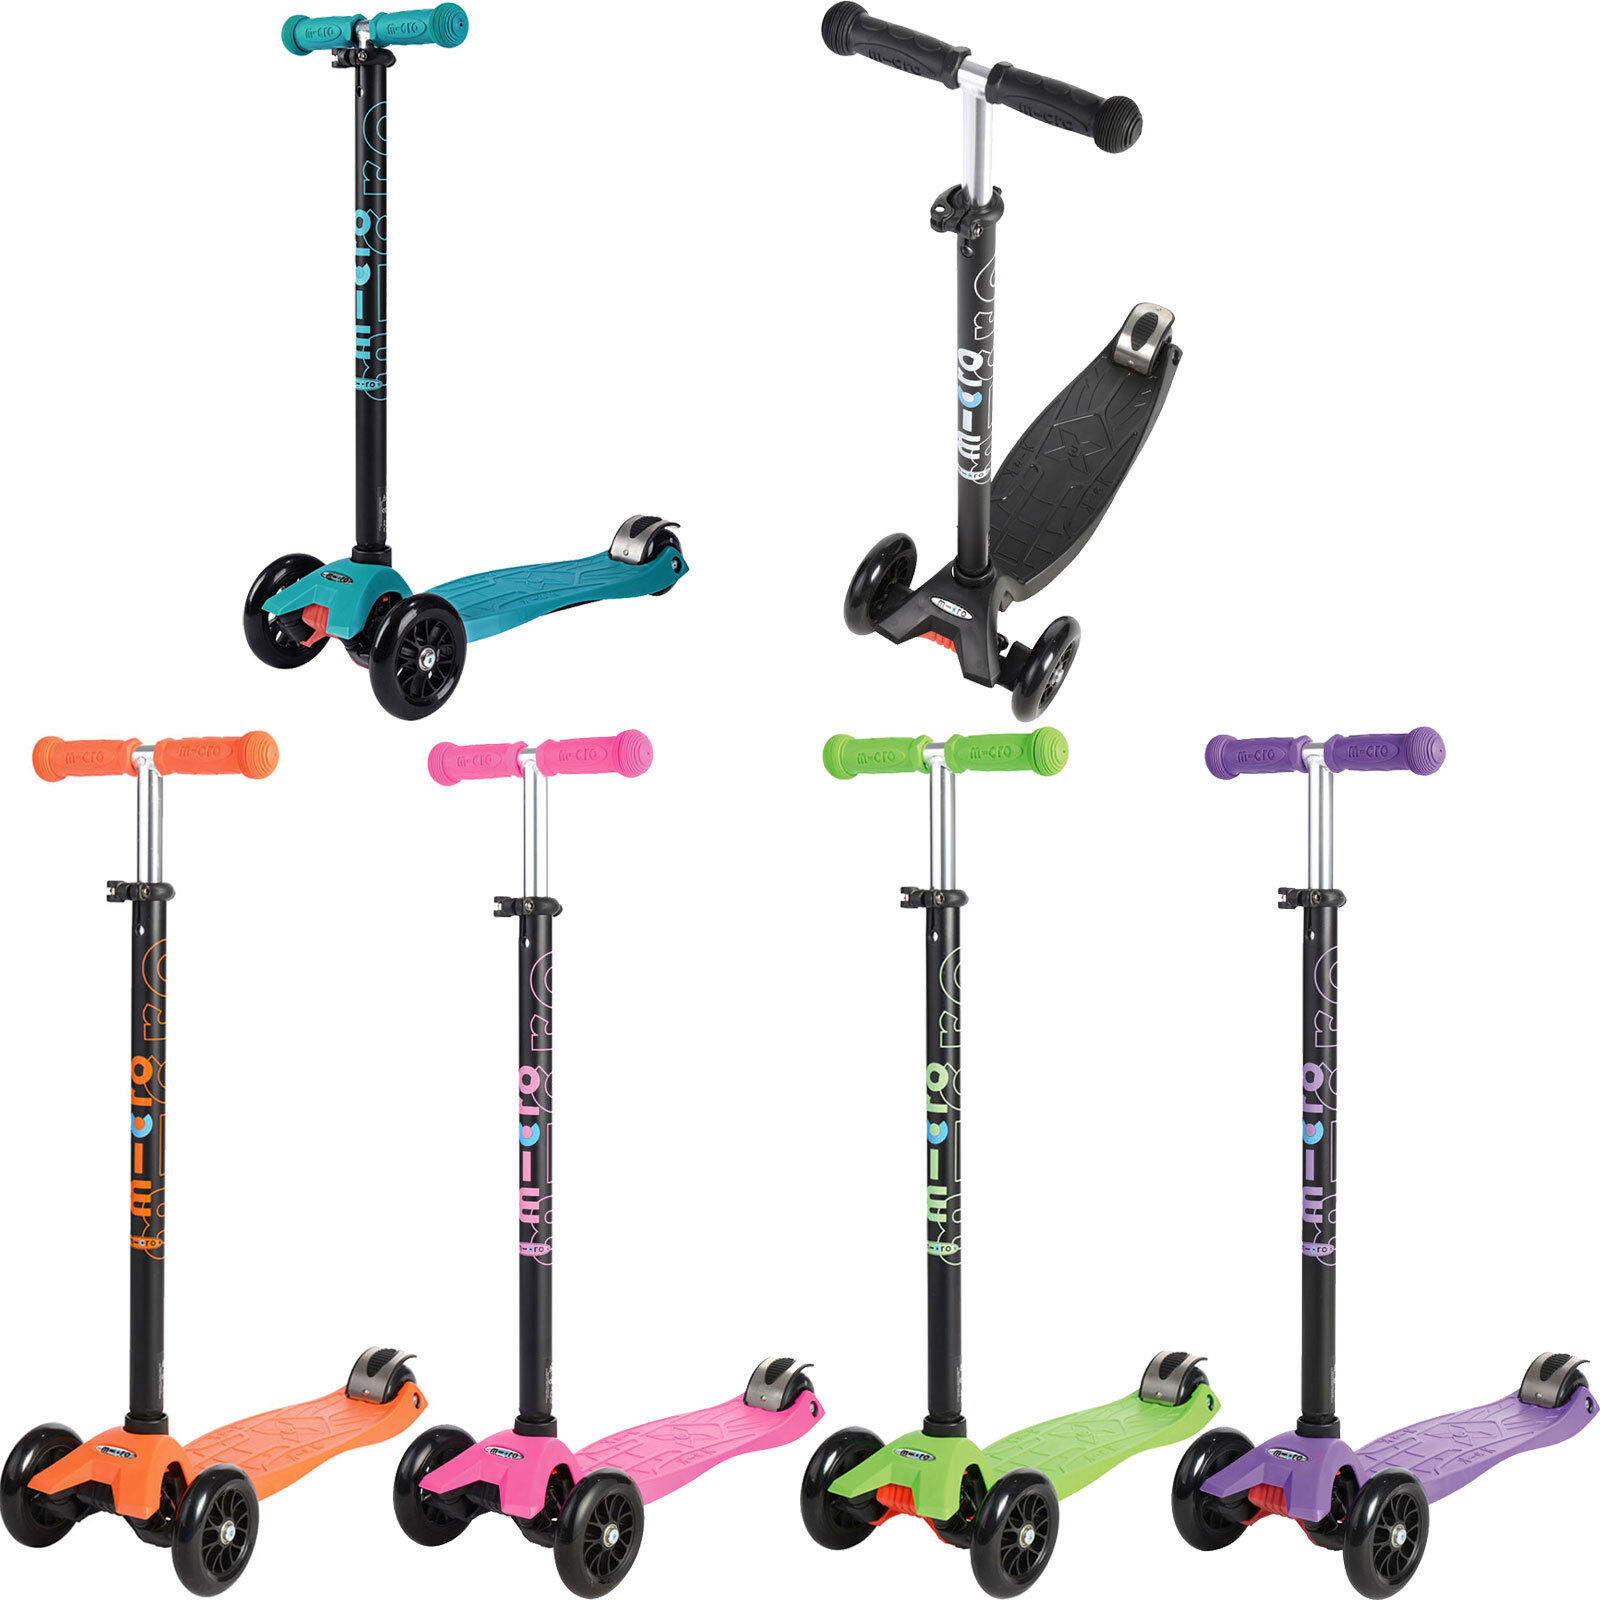 Micro Maxi Micro T Scooter Kinder-Cruiser Scooter Enfants Scooter Scooter